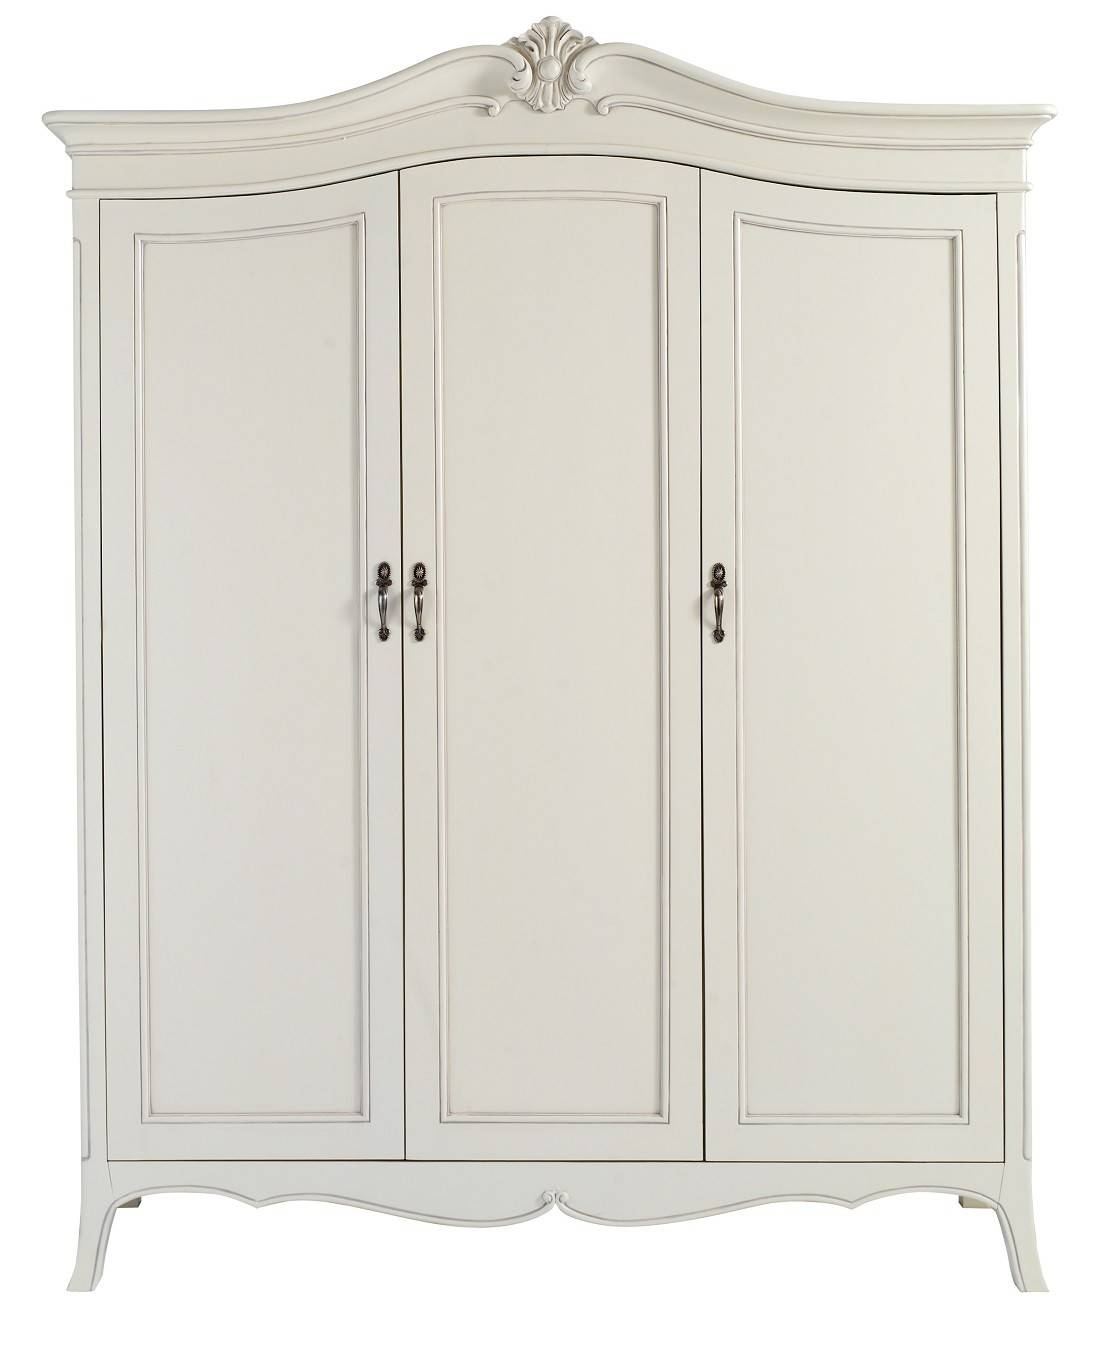 Louis French Ivory Painted 3 Door Triple Wardrobe | Oak Furniture Uk within Ivory Wardrobes (Image 8 of 15)